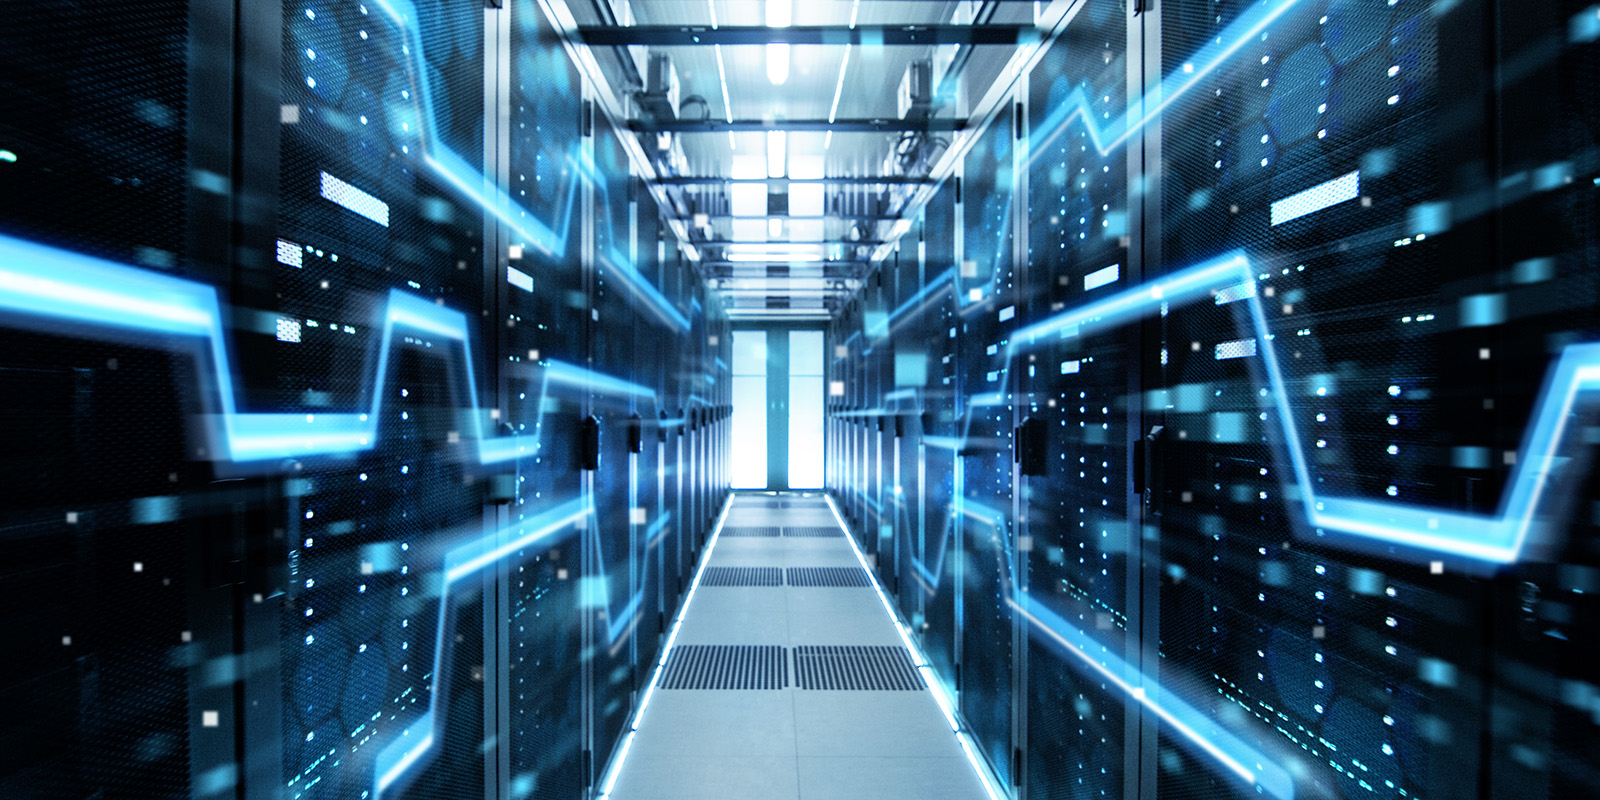 Insights on hyperscale data centres | StarHub Business